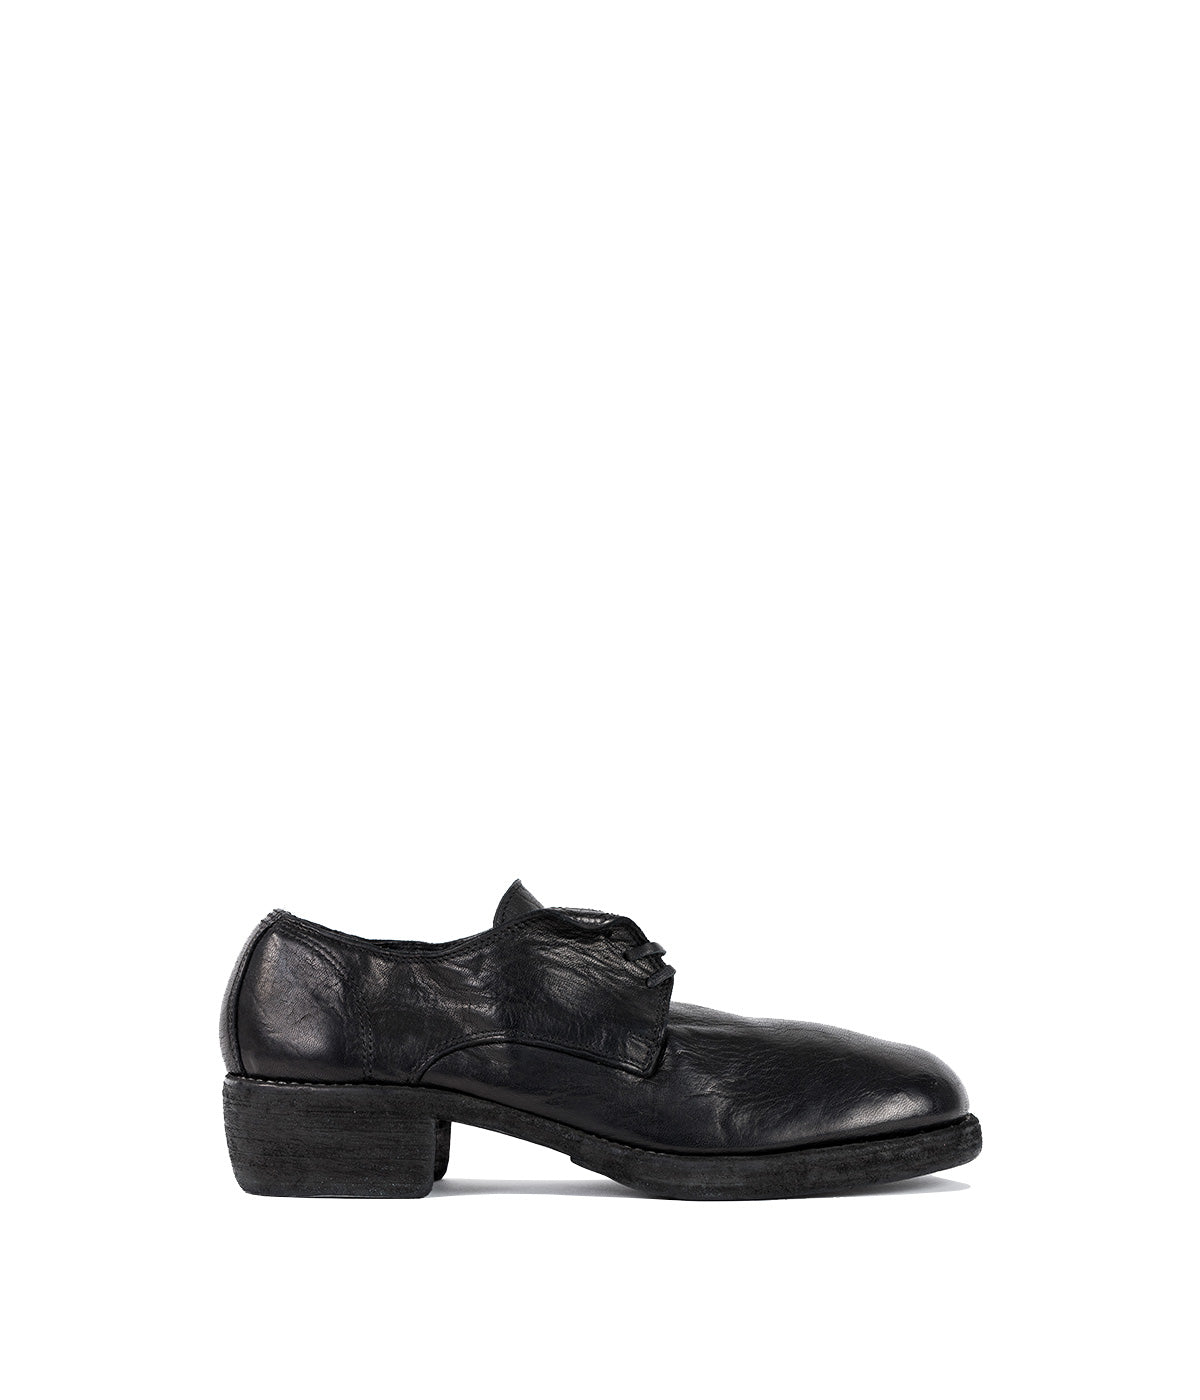 Black Classic Derby Shoes